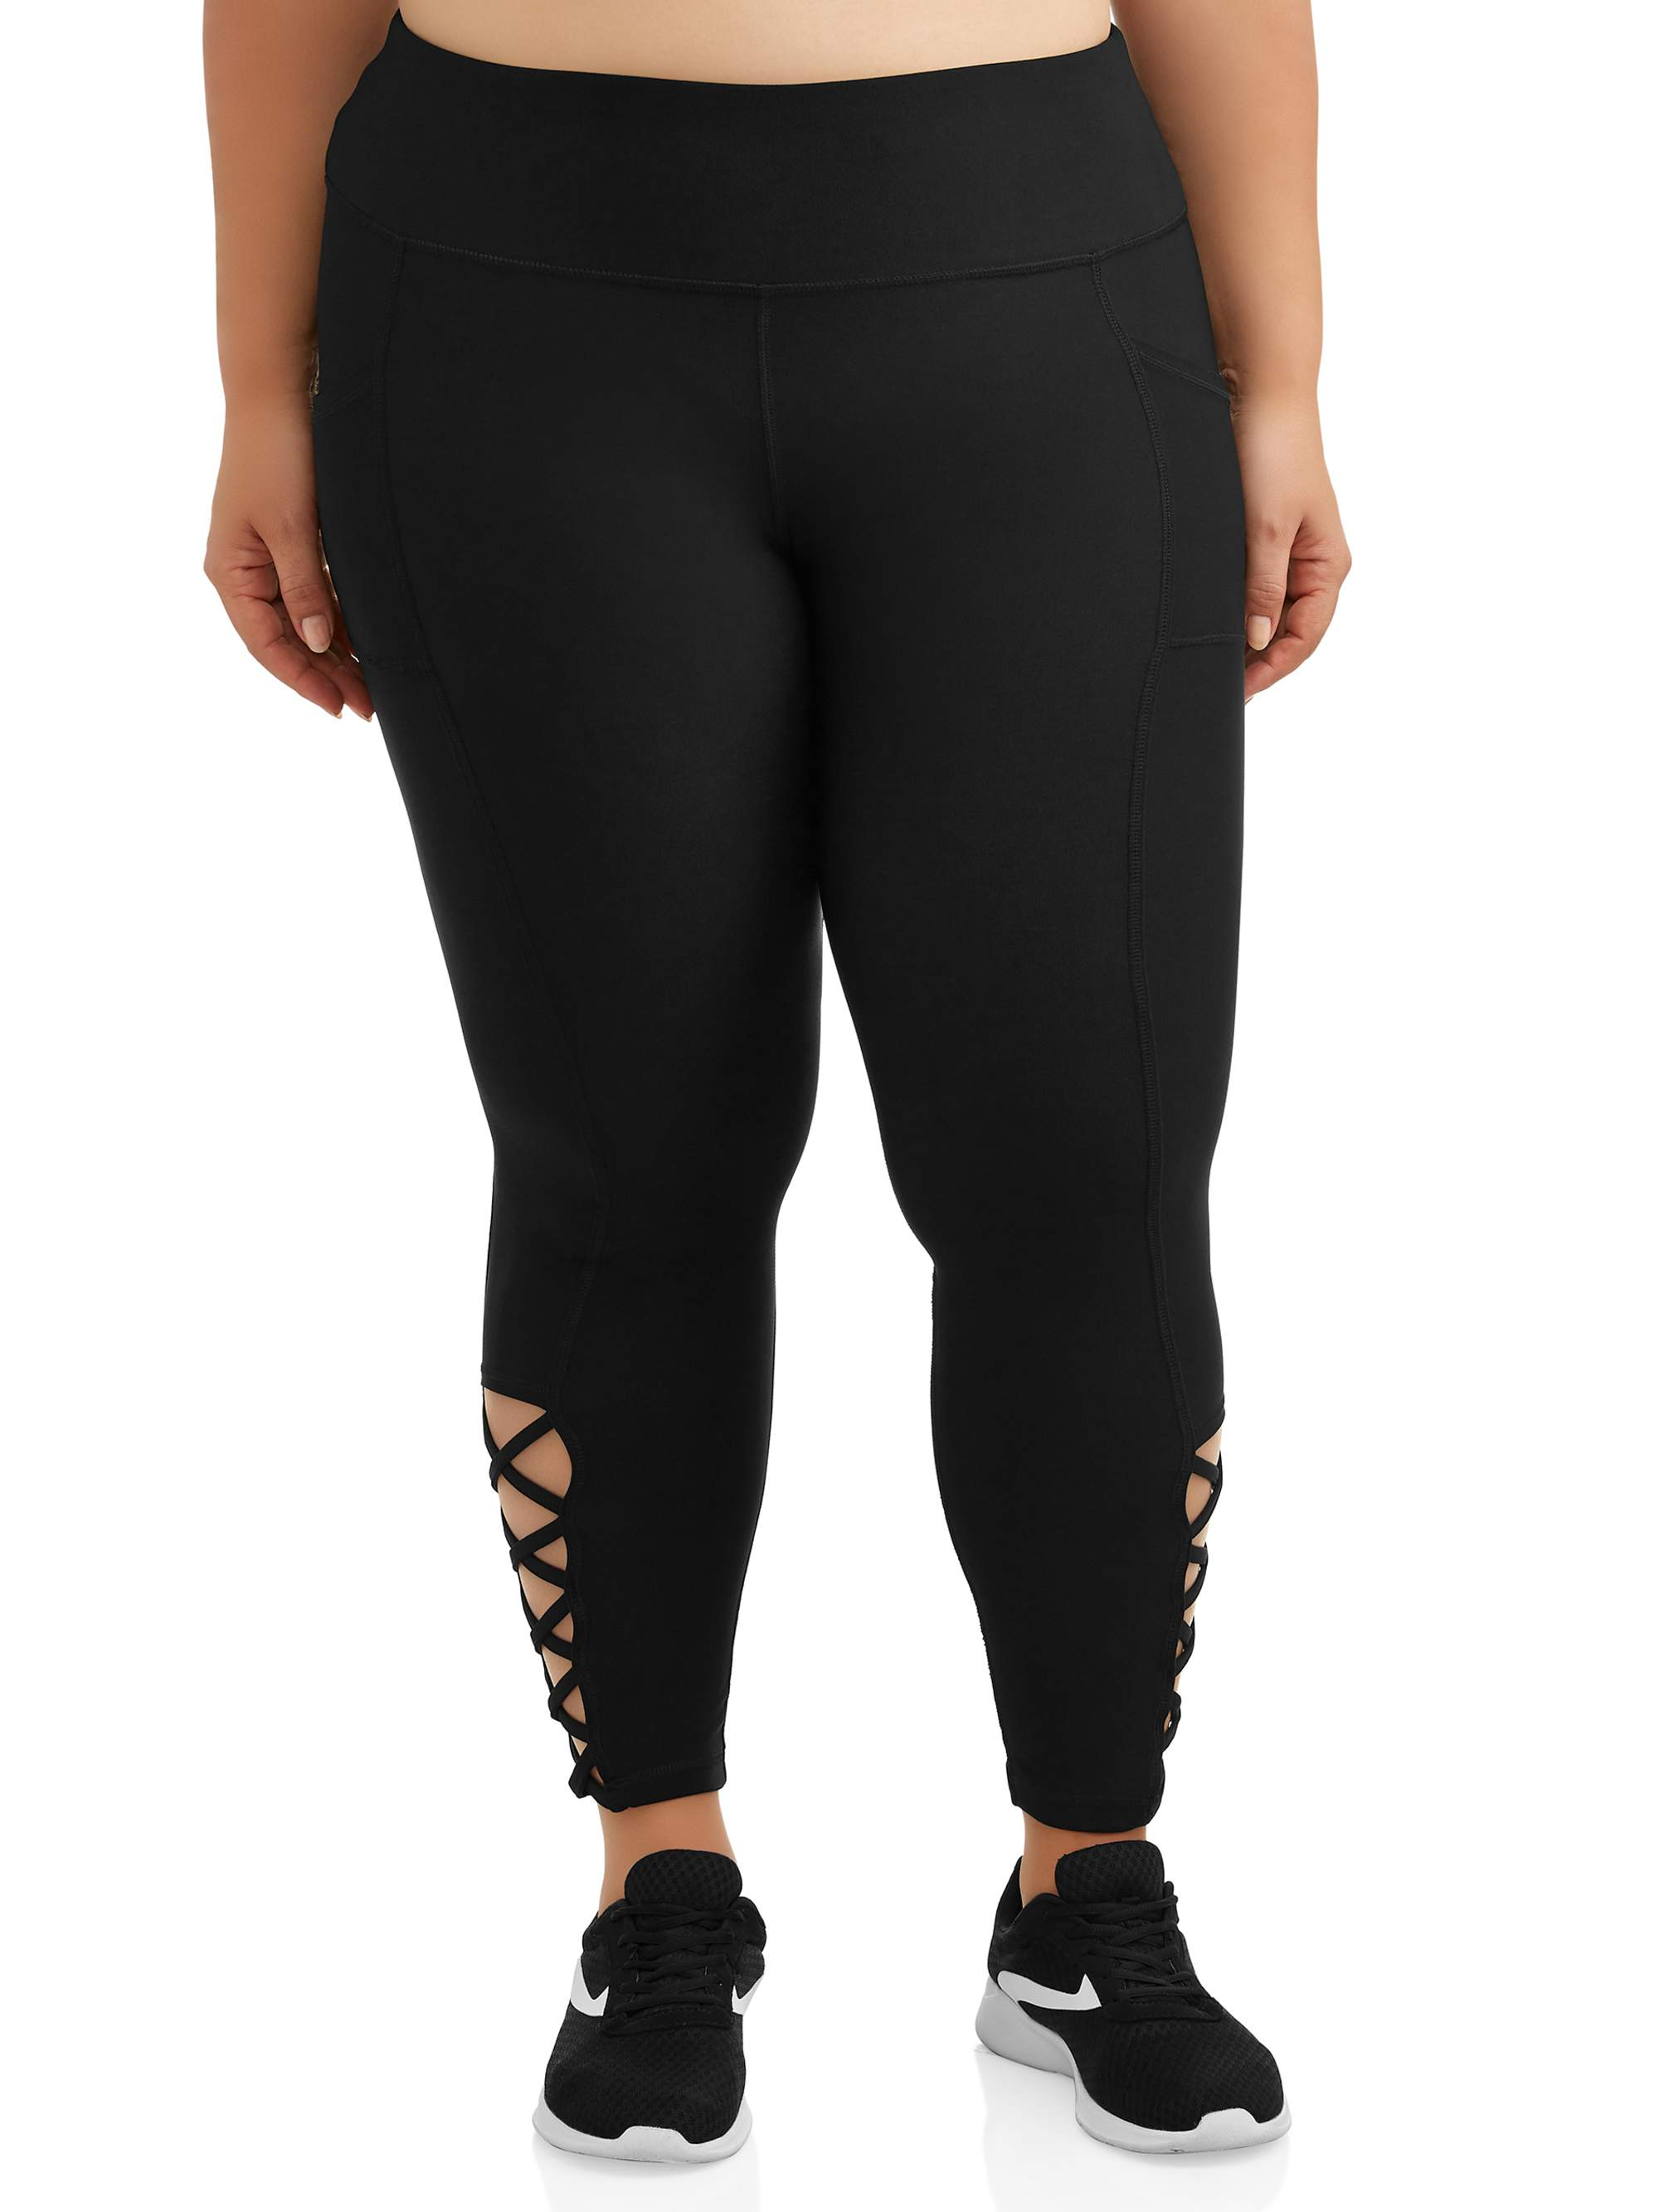 New York Laundry Women's Plus Cut Out Legging with Side Pockets